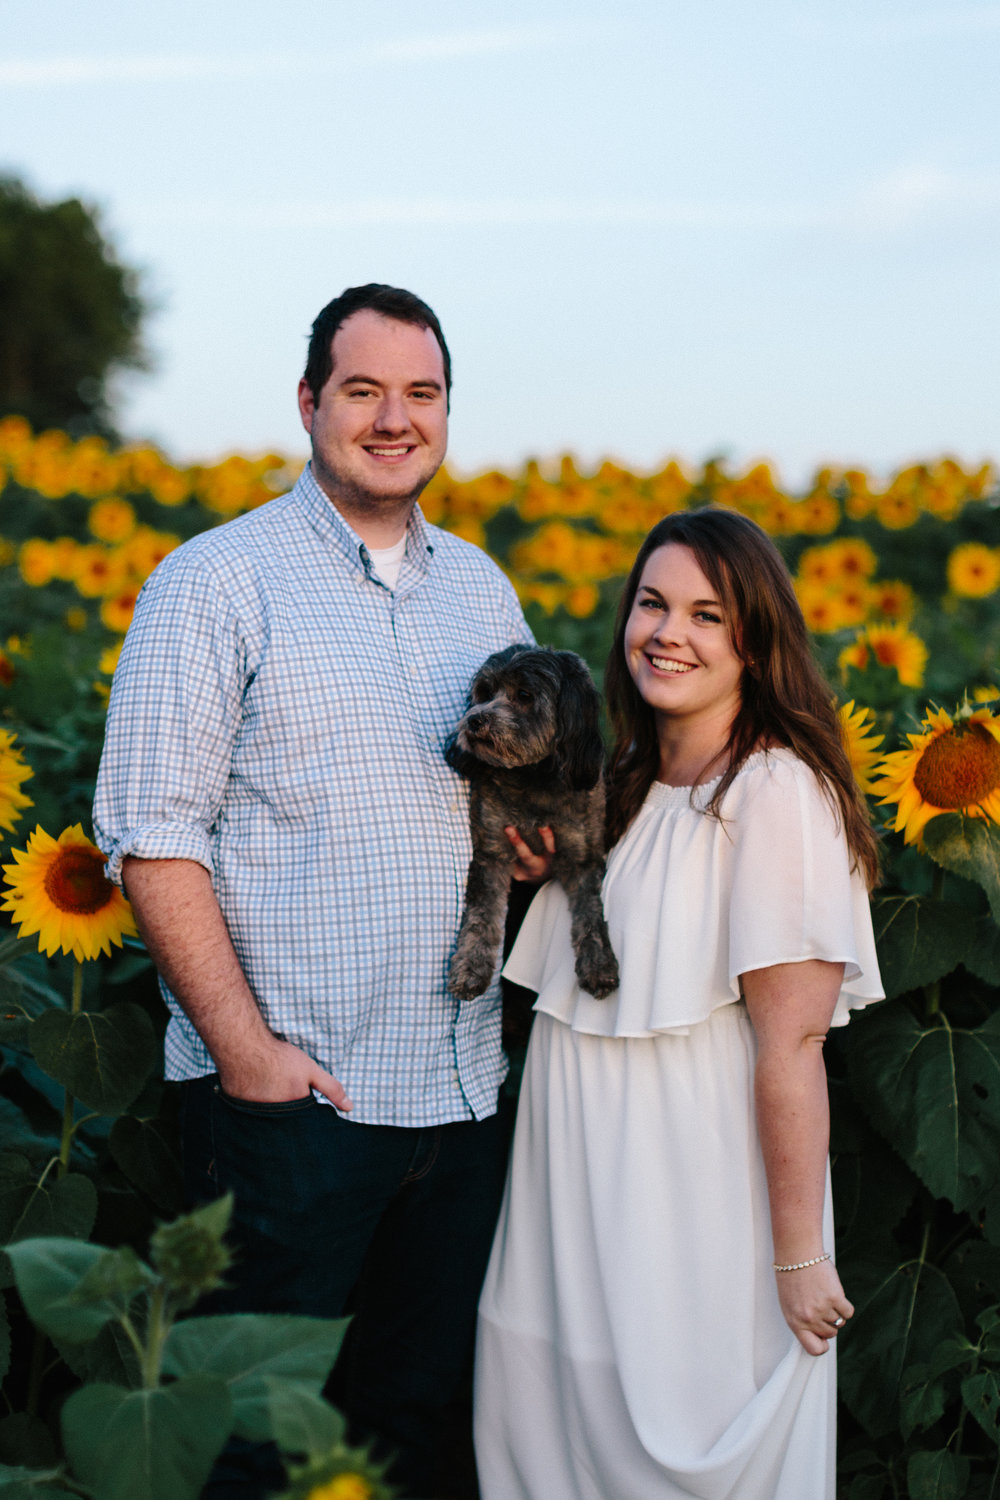 alyssa barletter photography sunflower field photos-8.jpg